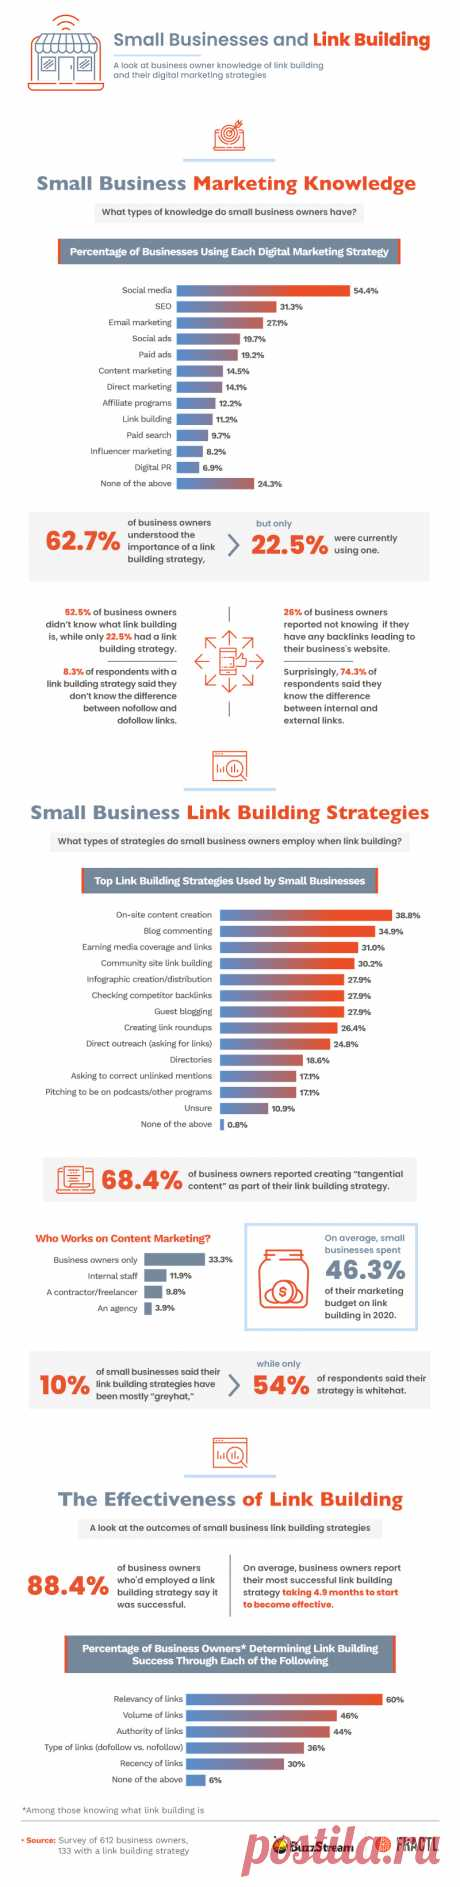 12 Popular SEO Strategies to Improve Your Google Ranking in 2021 Here are the top five from the list: Content creation Blog commenting Media coverage Community sites Infographics